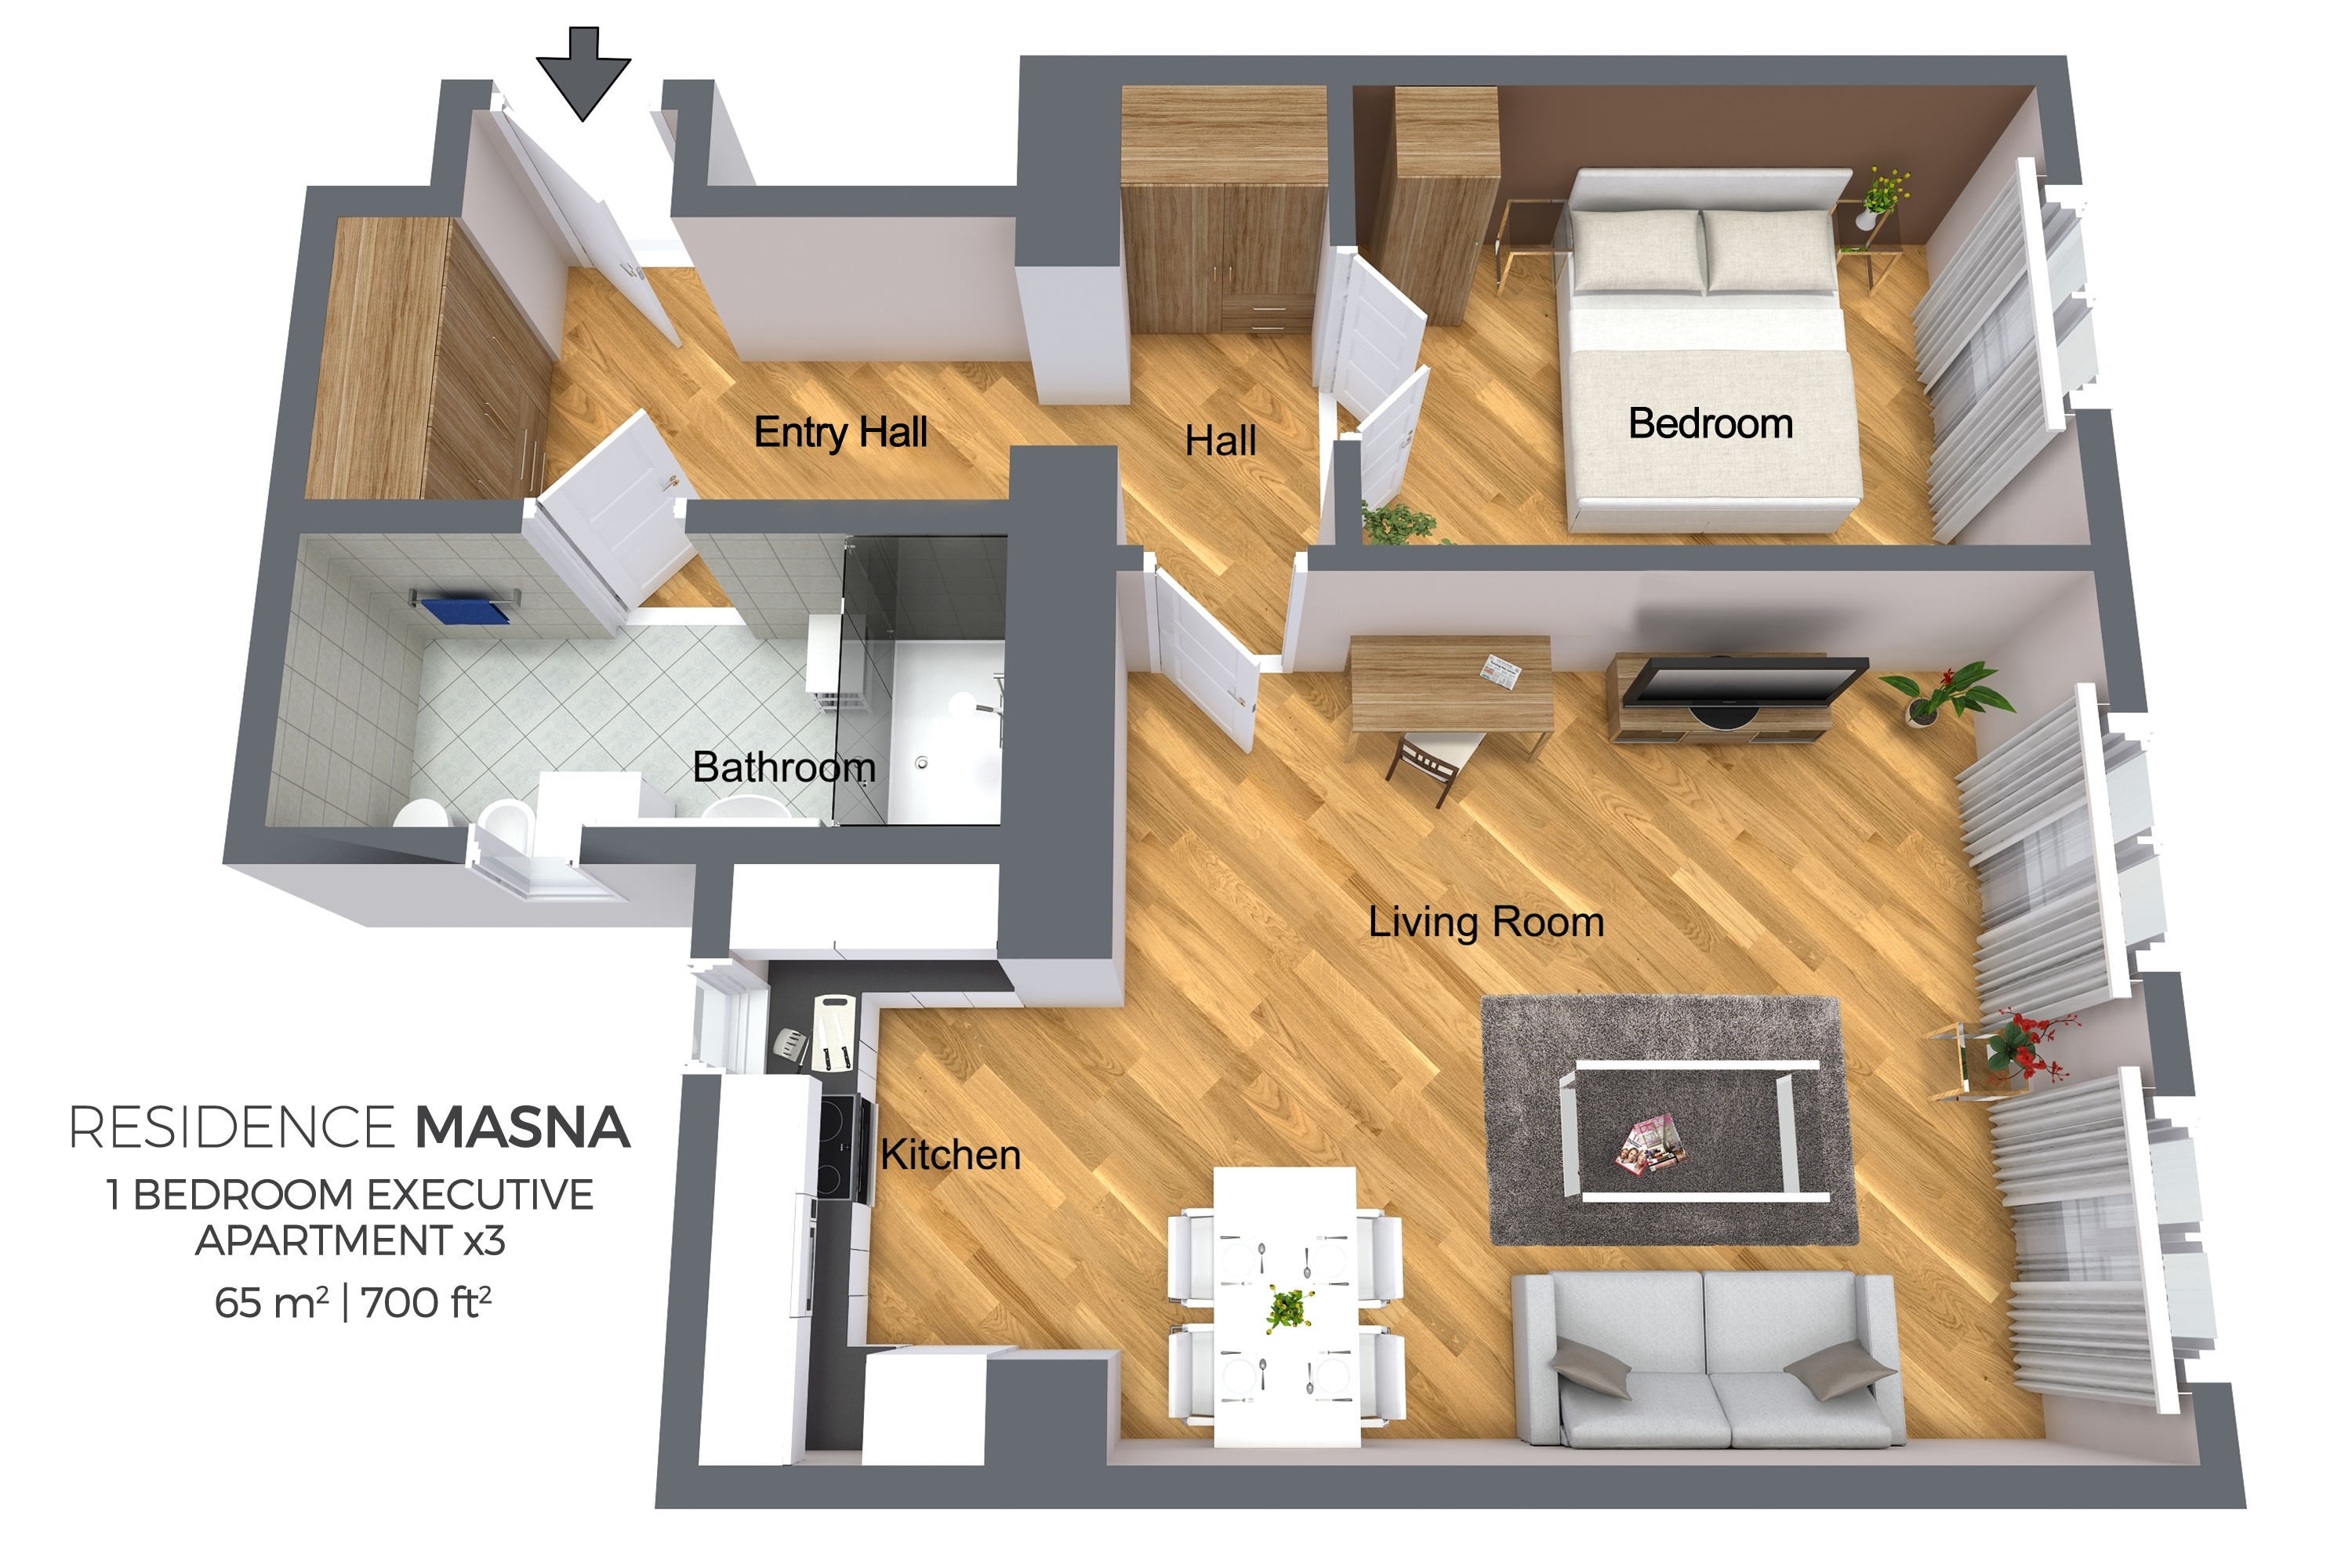 1 bed executive floor plan at Residence Masna Apartments